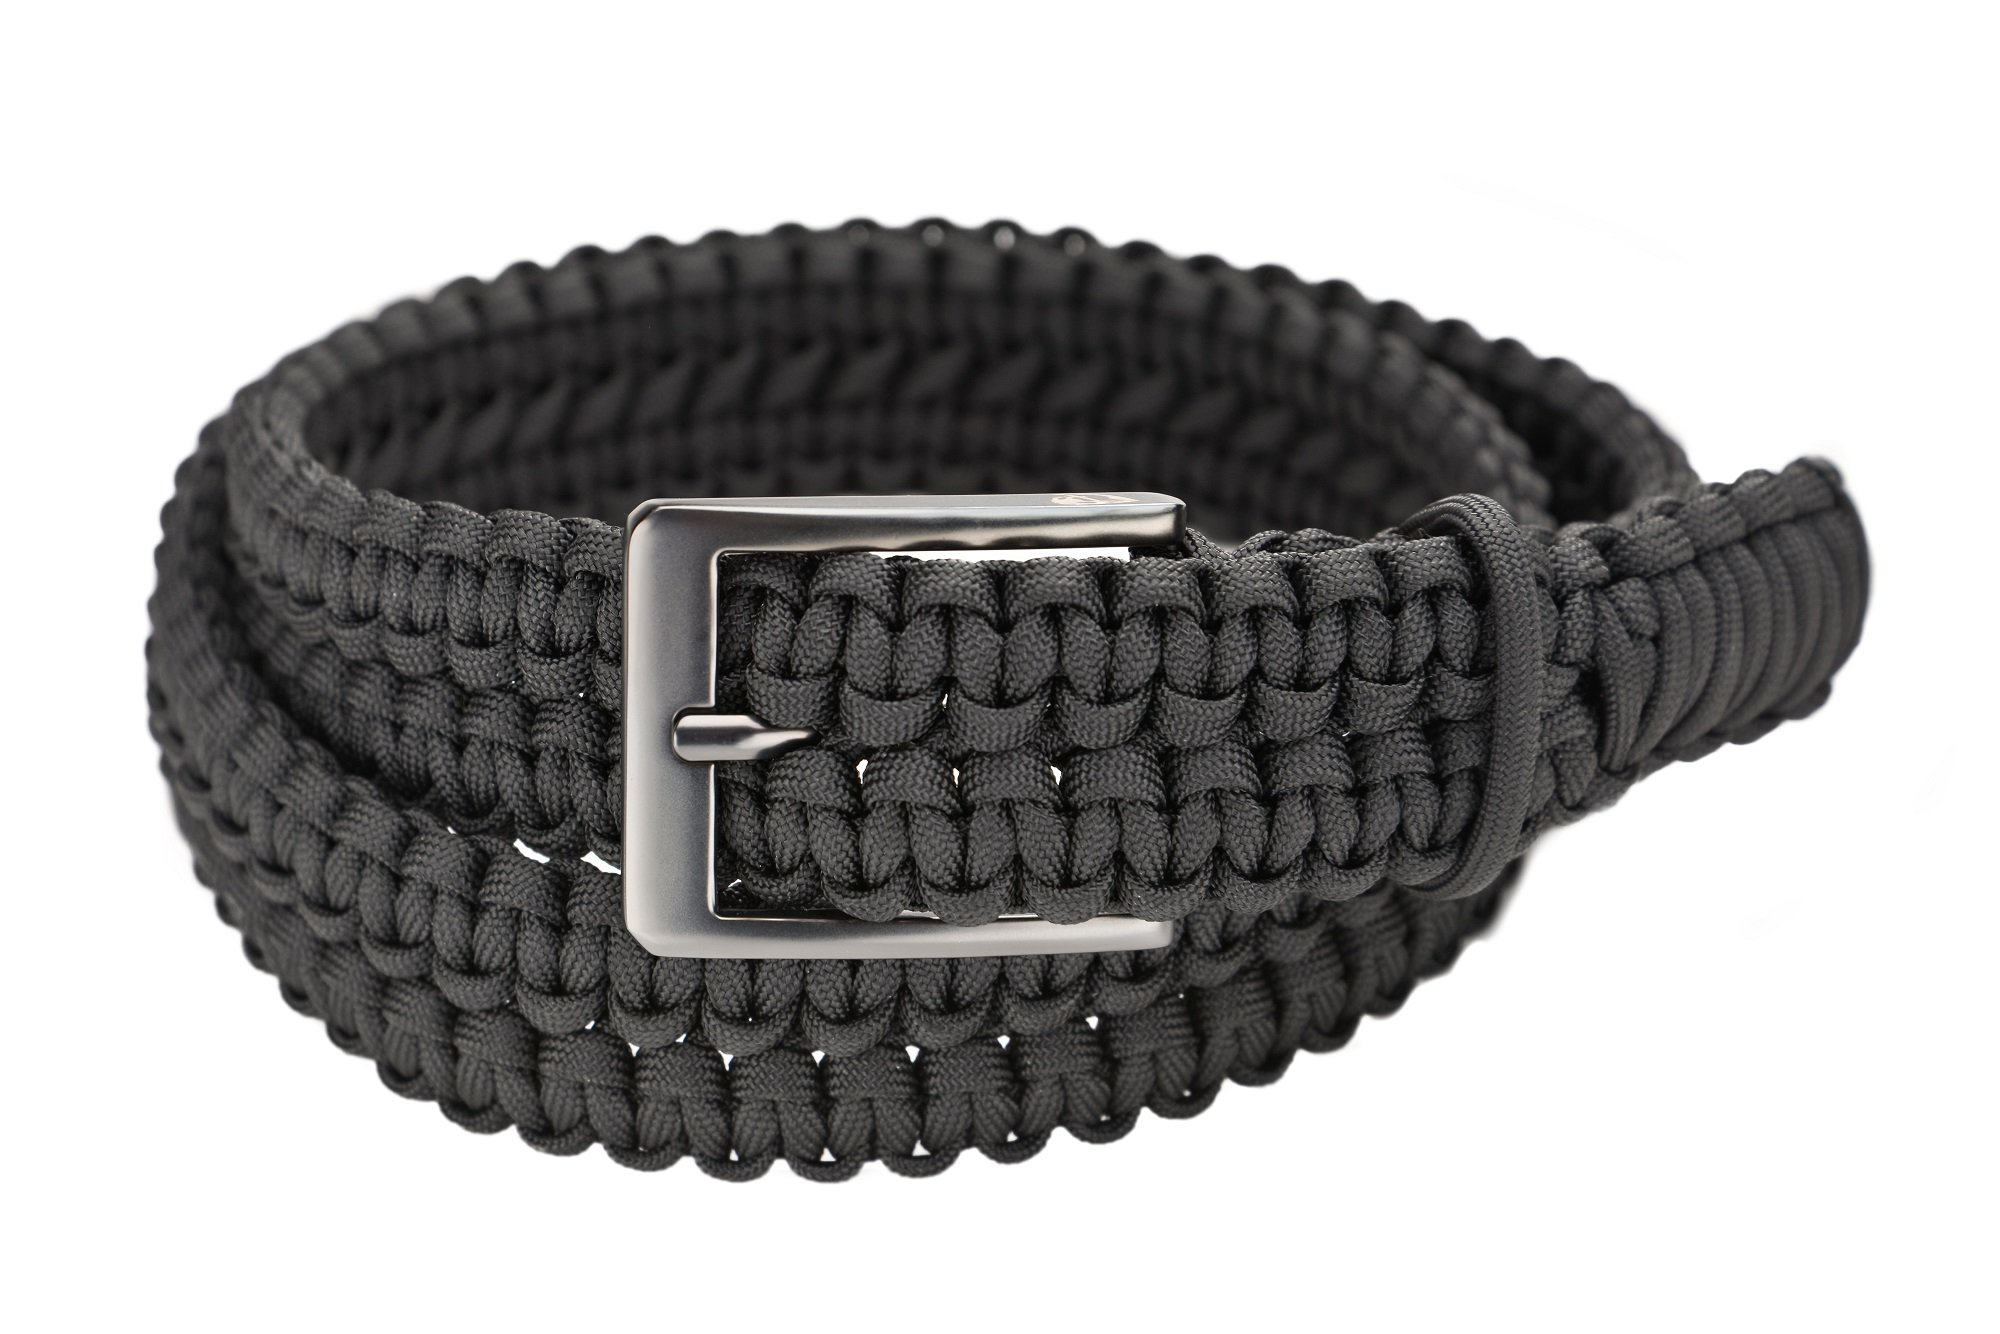 RattlerStrap New Gun Metal Edition Paracord Survival EDC Belt - 100+ Feet of USA Made 550 lb. Handwoven Emergency Nylon Parachute Cord - Black (Medium)